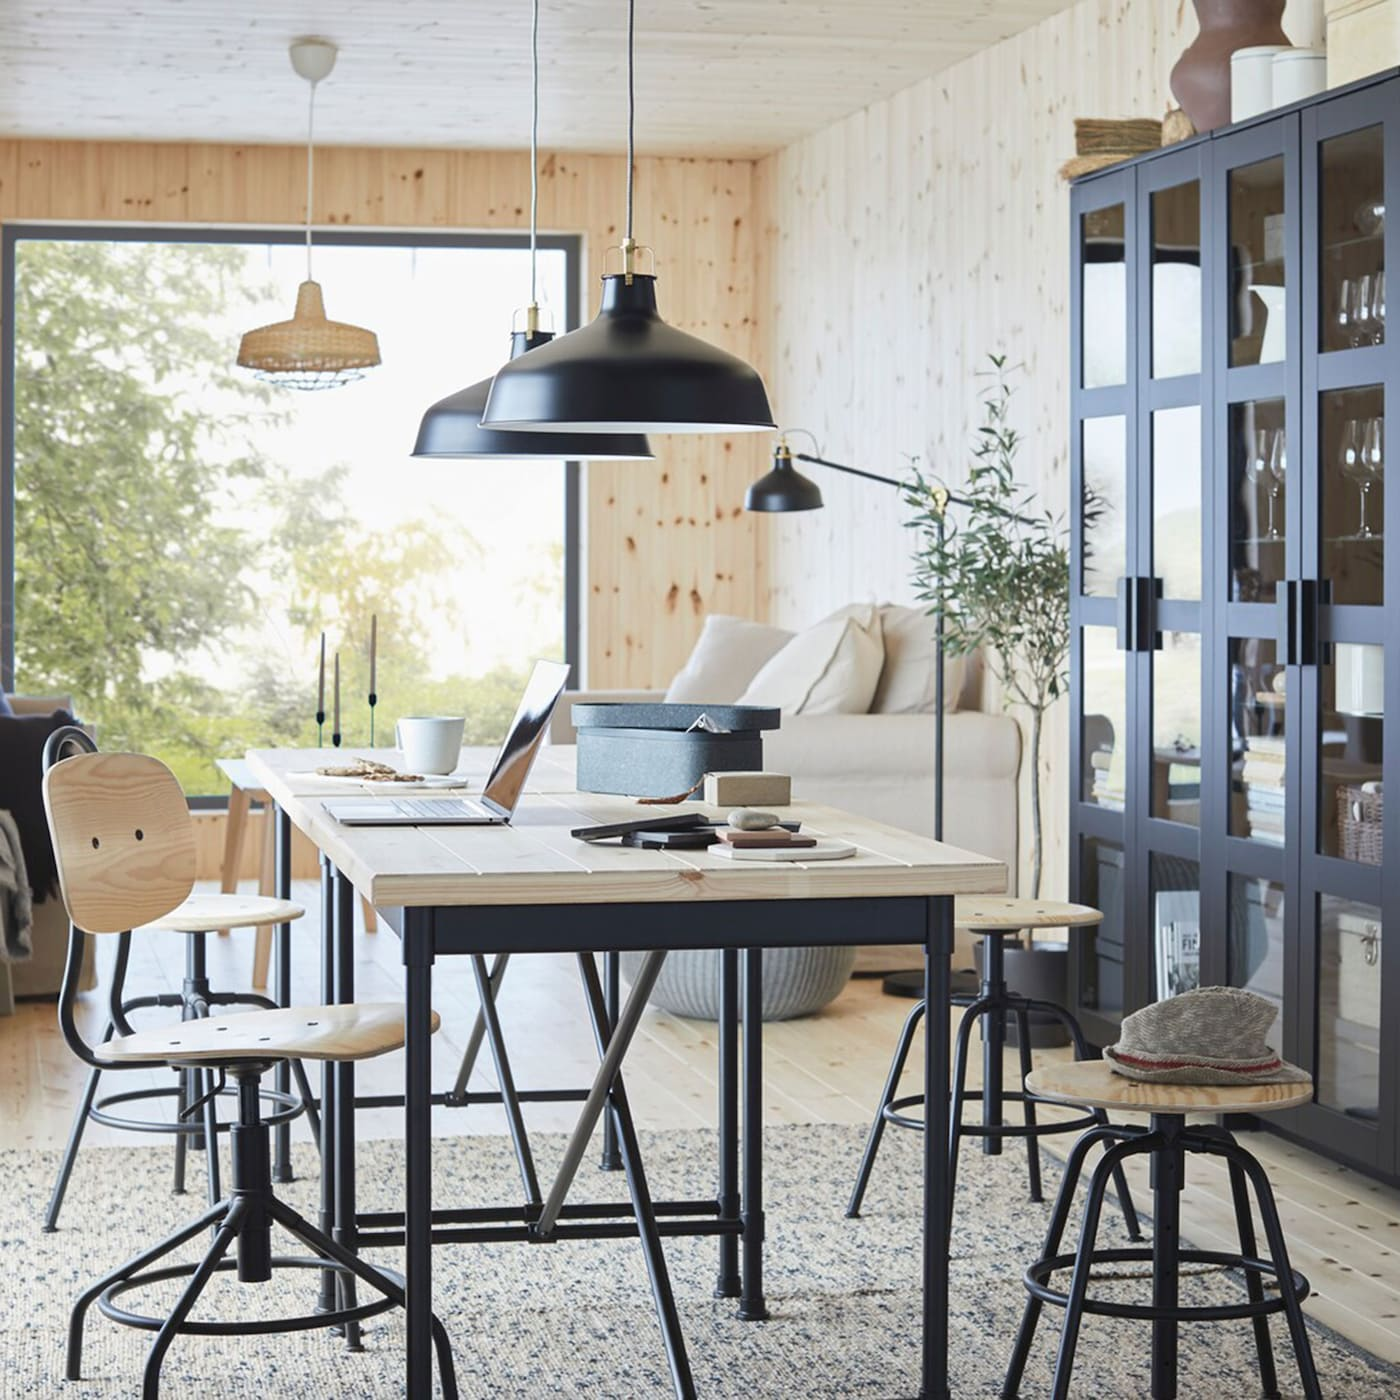 IKEA KULLABERG pine work desk with a thick worktop surface in an industrial styled dining area.